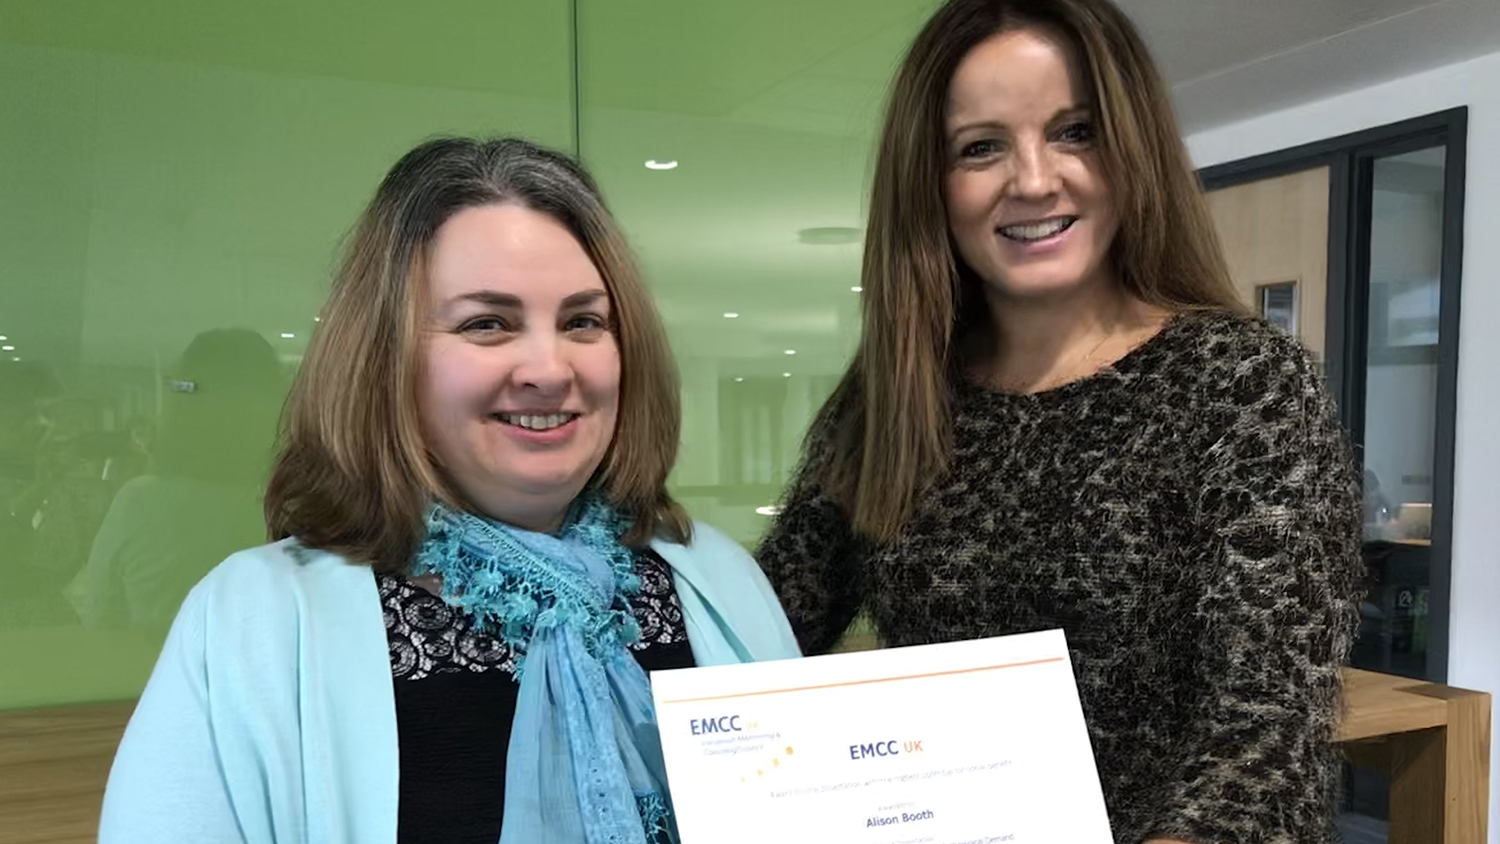 Natalia de Estevan-Ubeda presents Alison Booth with the EMCC UK award for the dissertation with the highest potential for social benefit